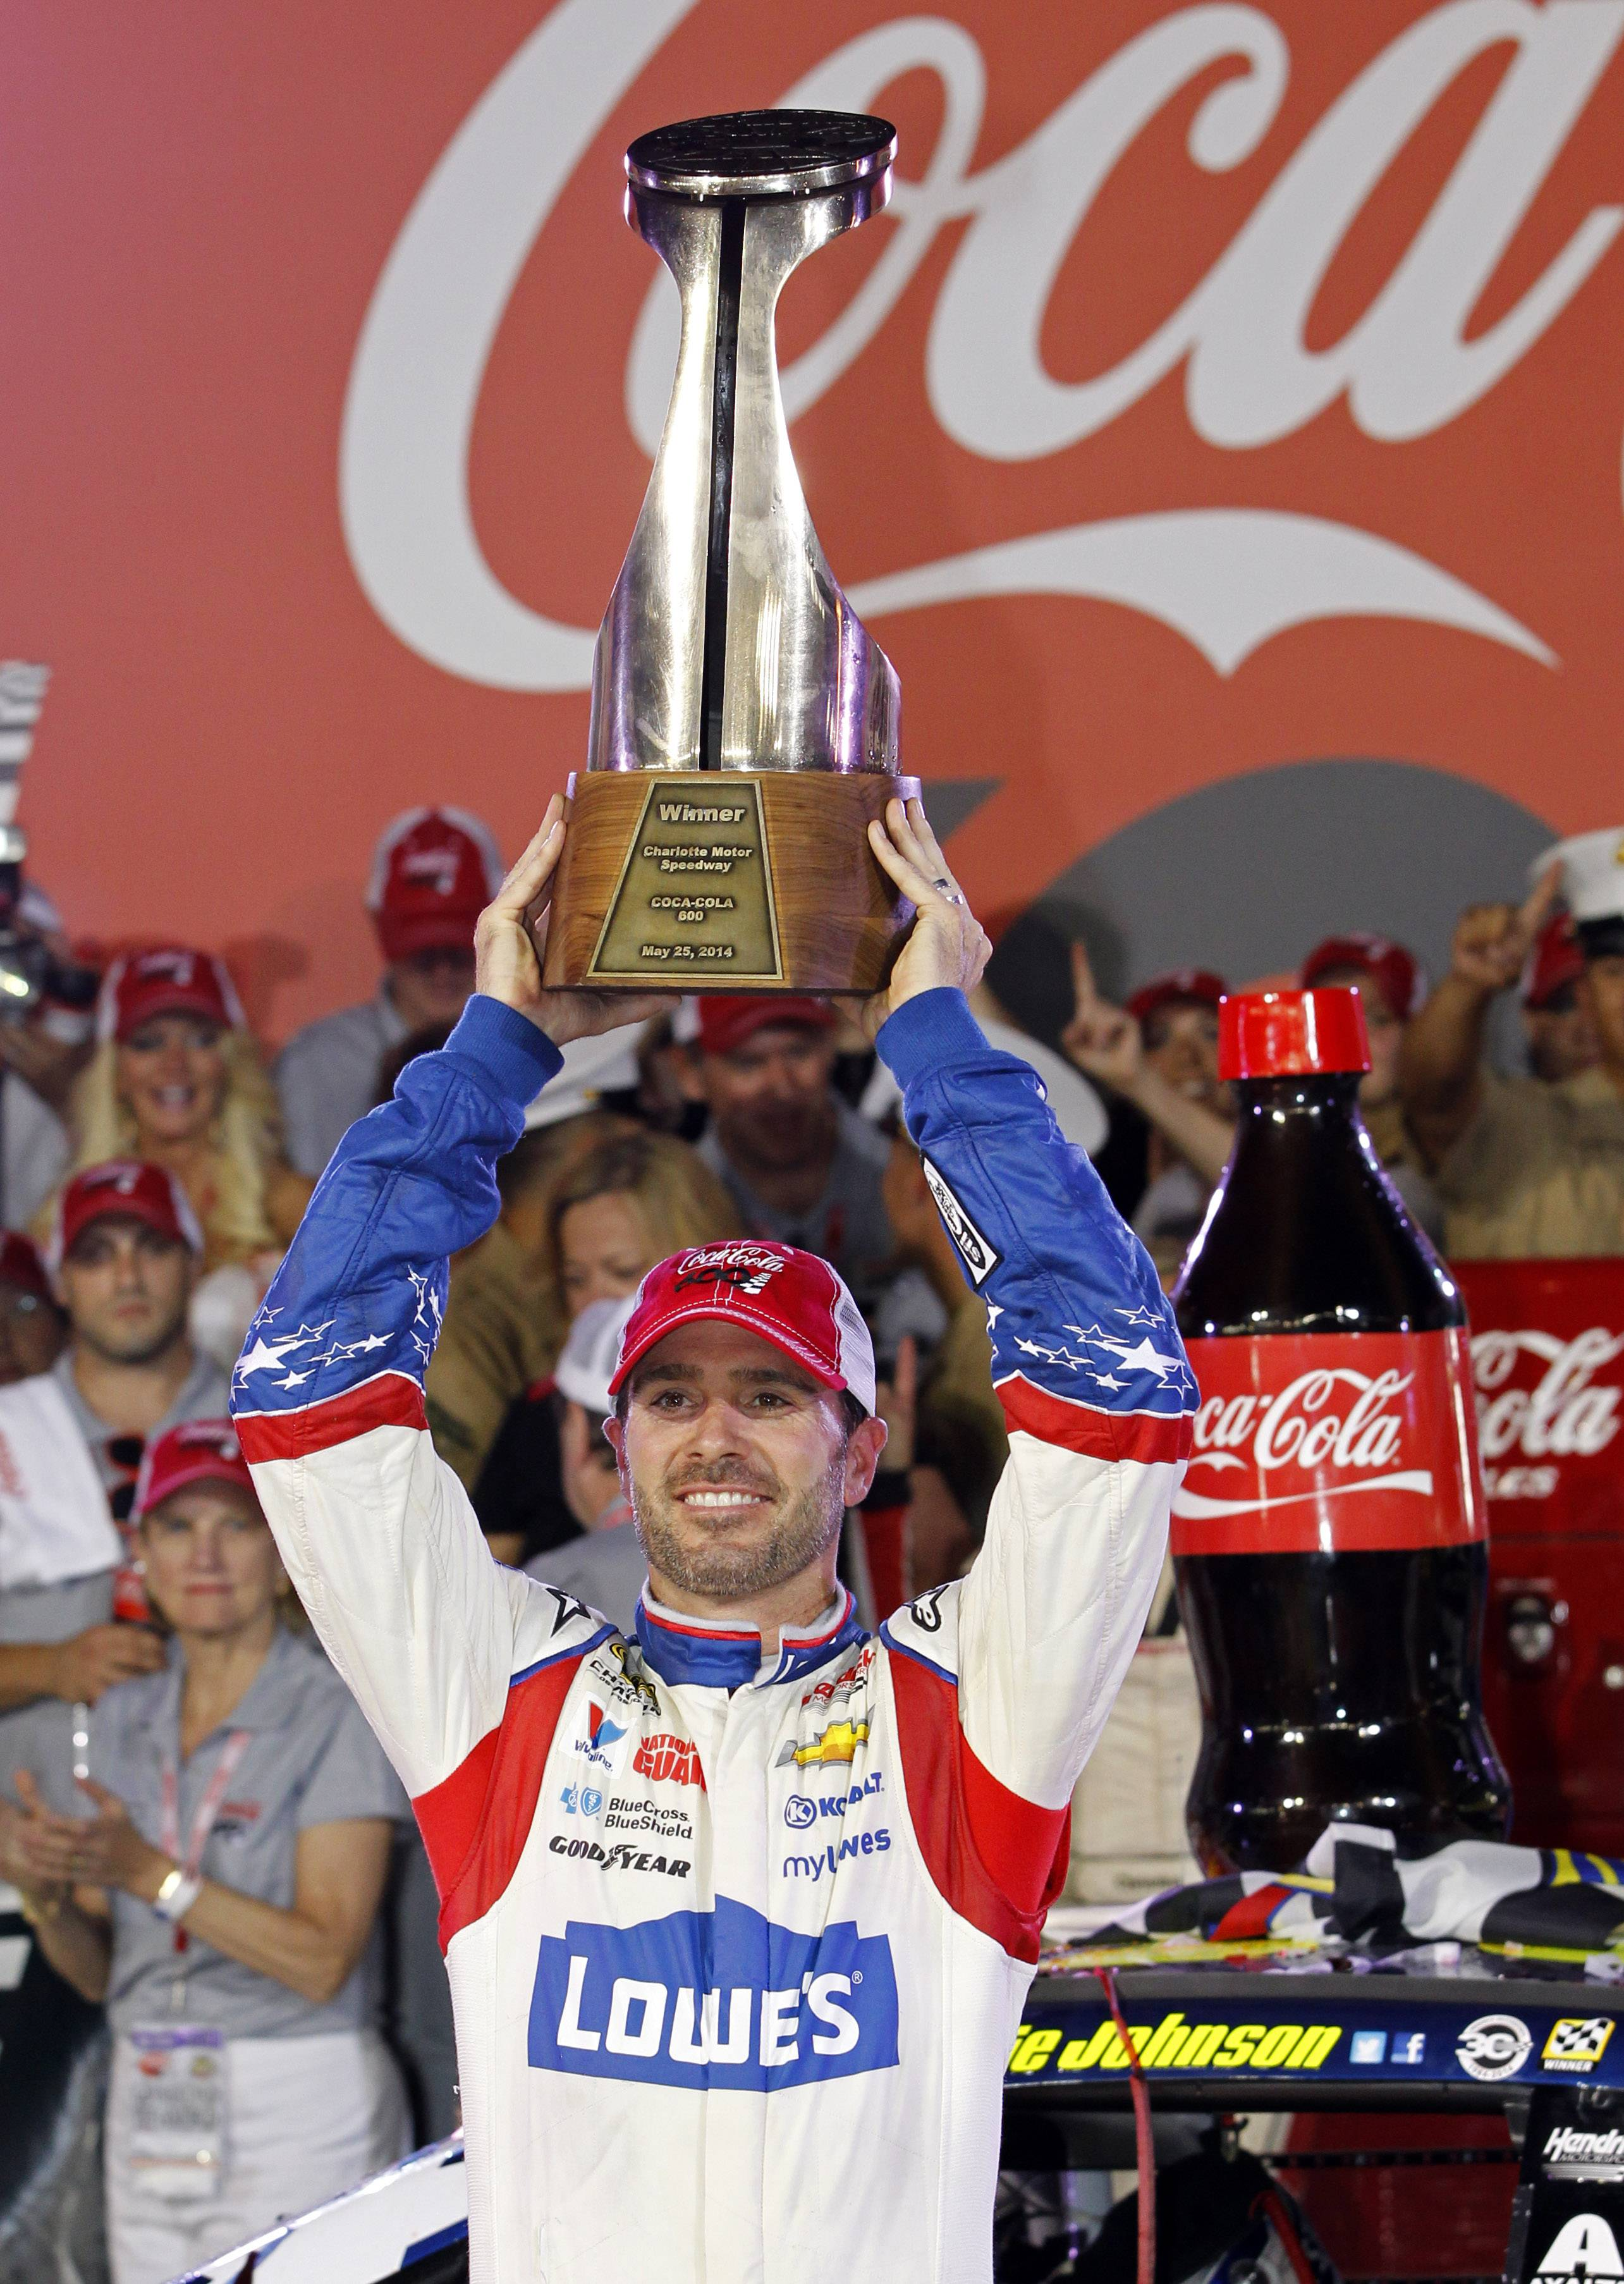 Driver Jimmie Johnson raises the trophy in Victory Lane after winning the NASCAR Sprint Cup series Coca-Cola 600 auto race at Charlotte Motor Speedway in Concord, N.C., Sunday, May 25, 2014.